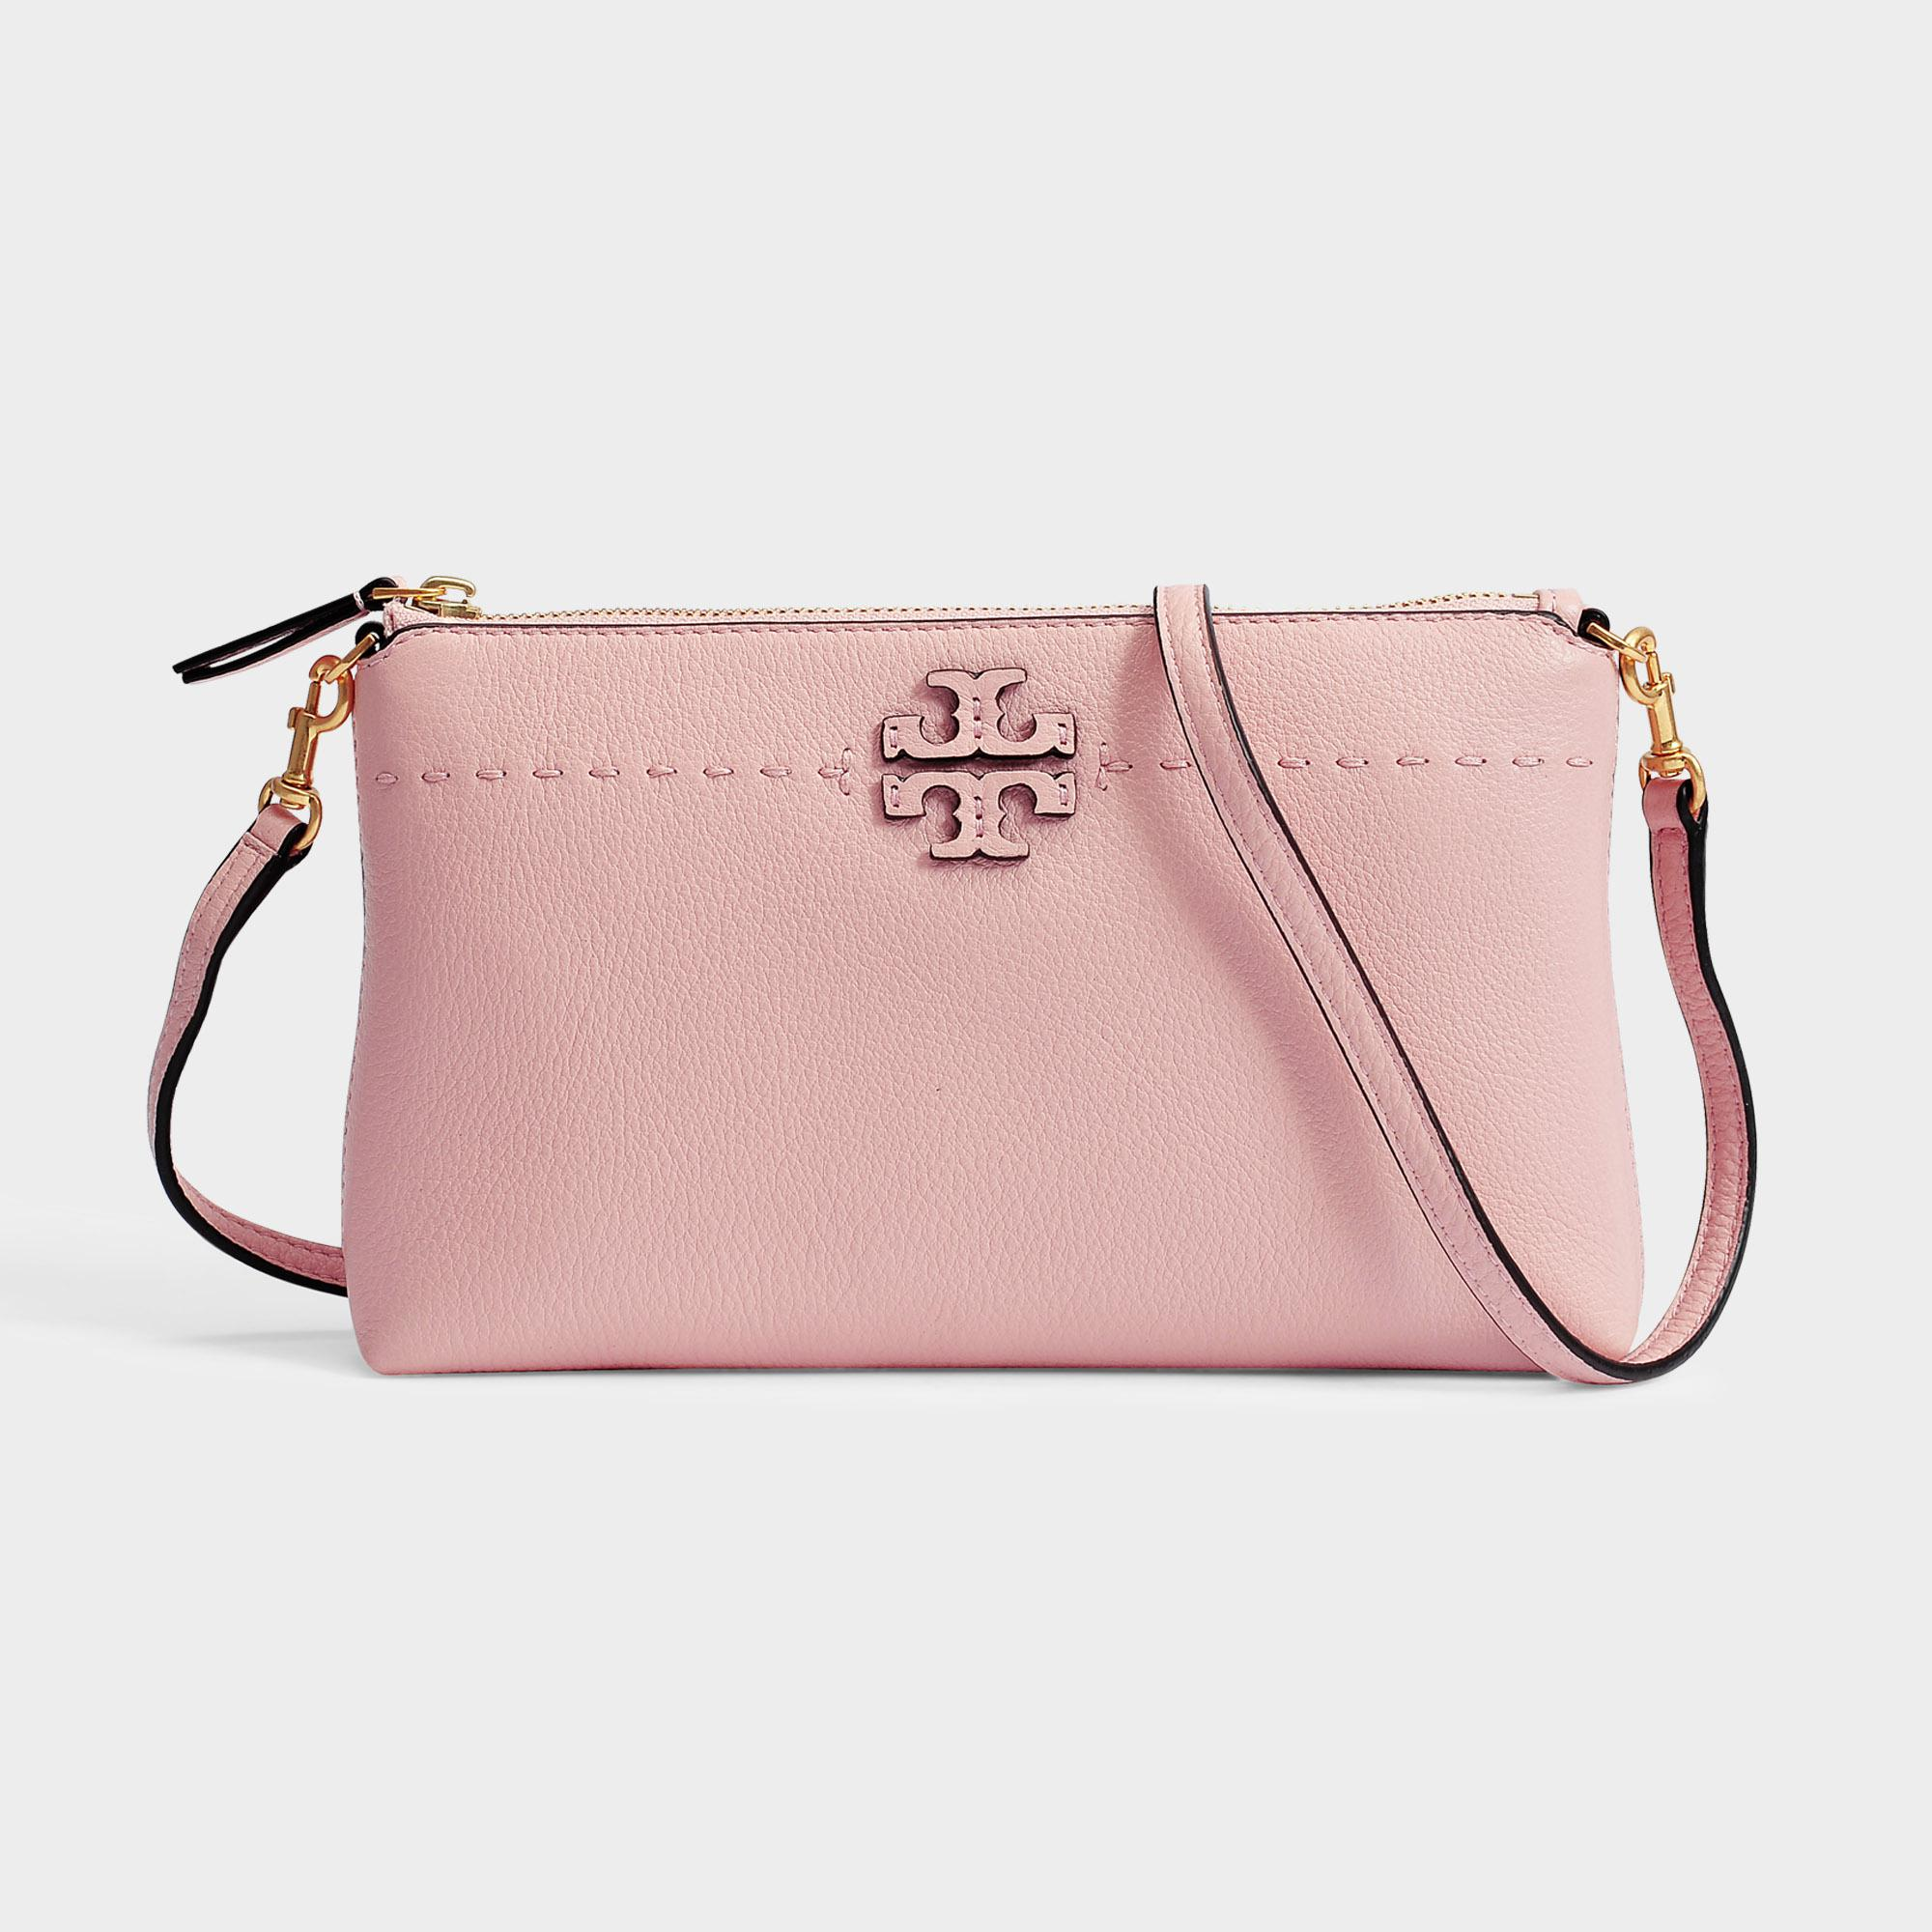 e50ddb90c07a Lyst - Tory Burch Mcgraw Top Zip Crossbody Bag in Pink